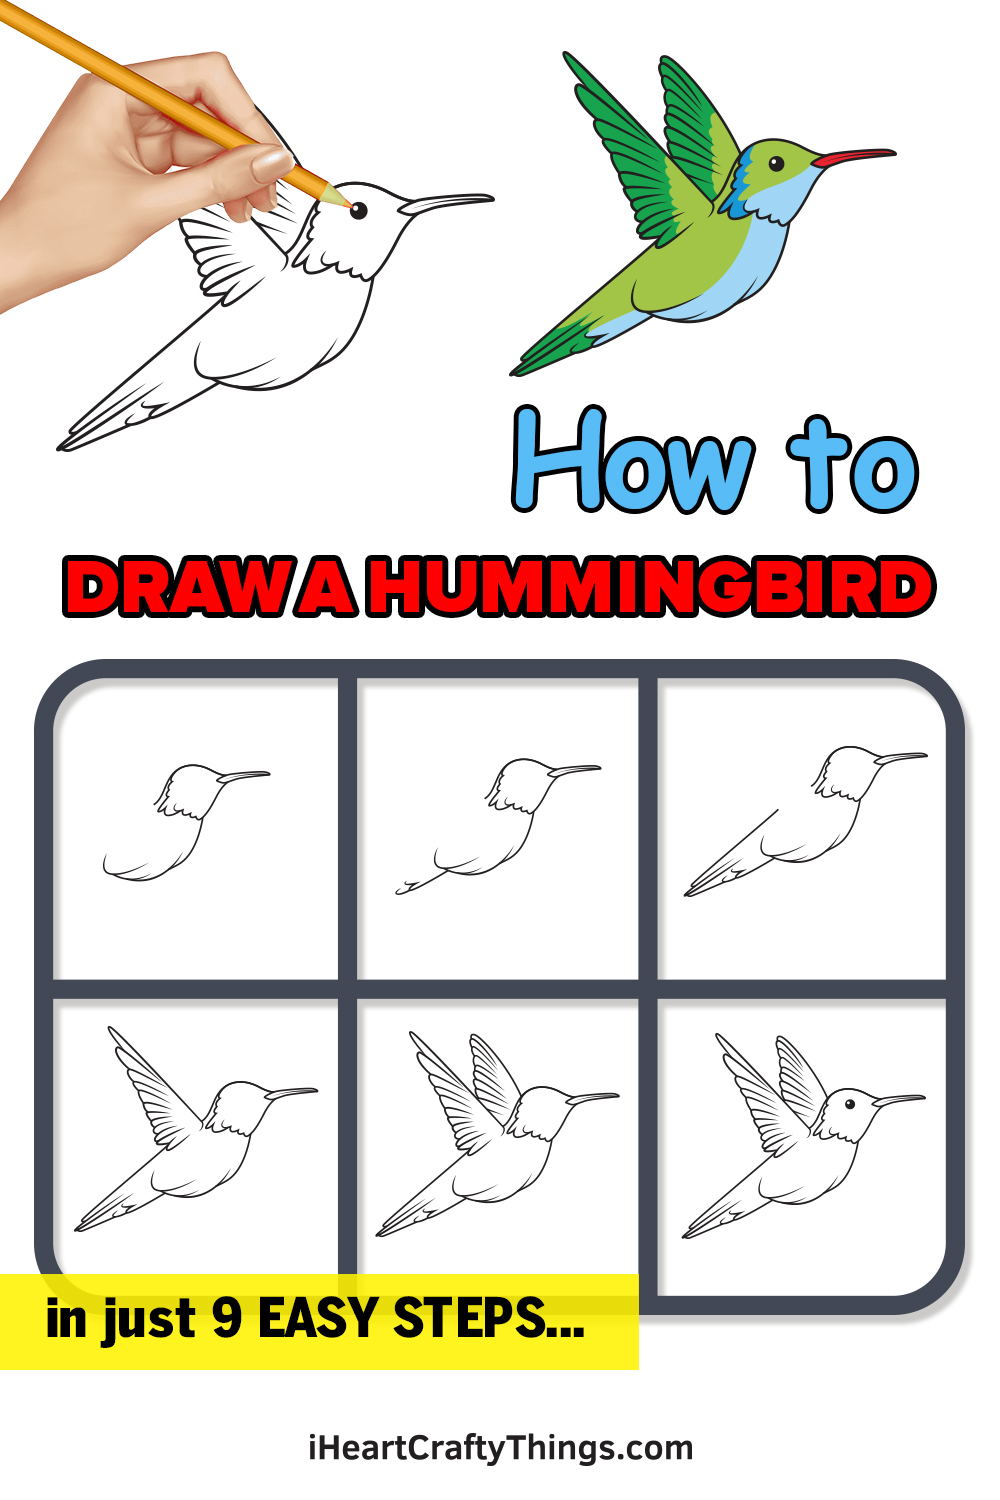 how to draw a hummingbird in 9 easy steps